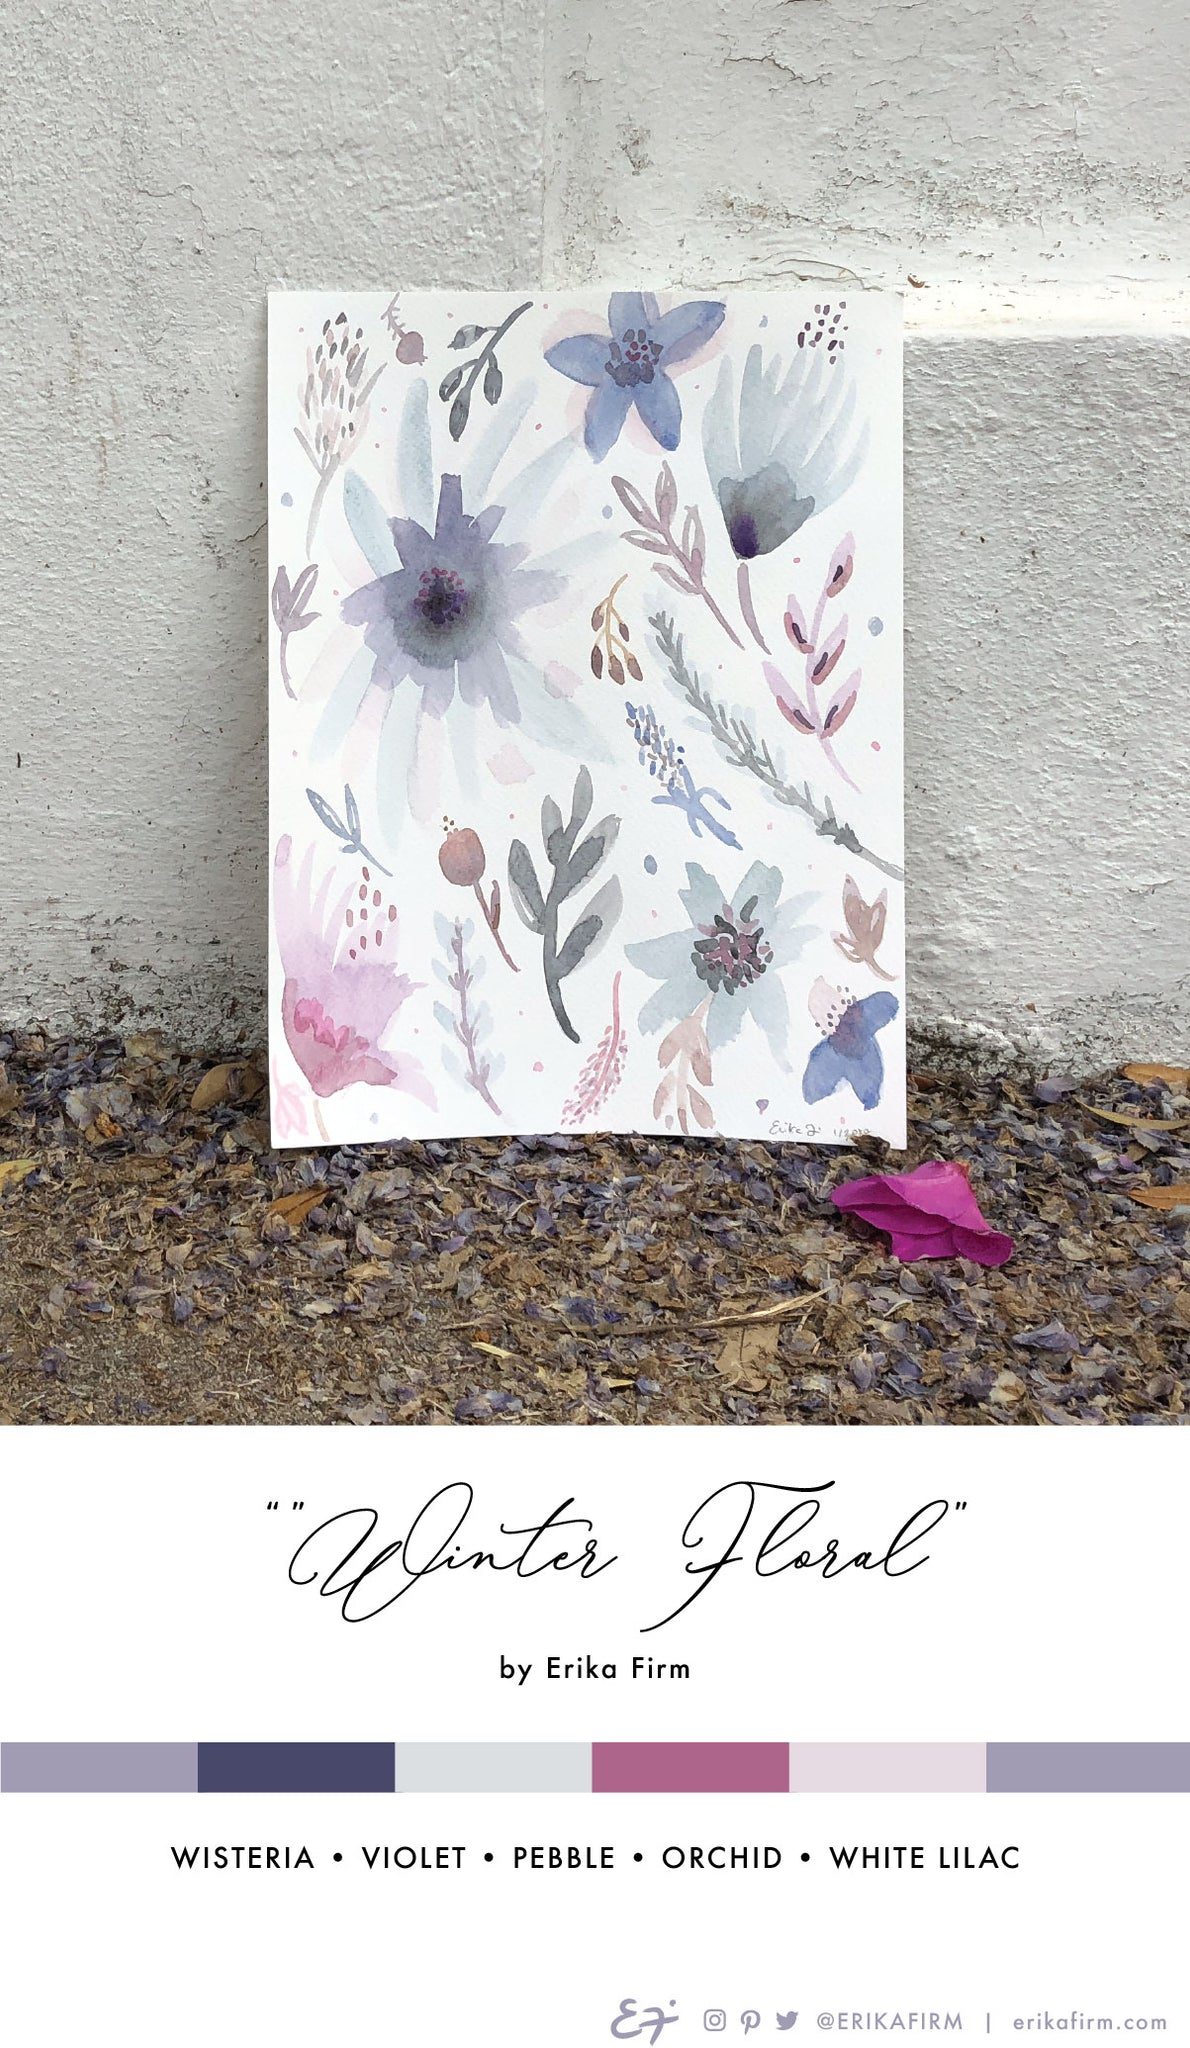 Winter Floral watercolor painting by Erika Firm